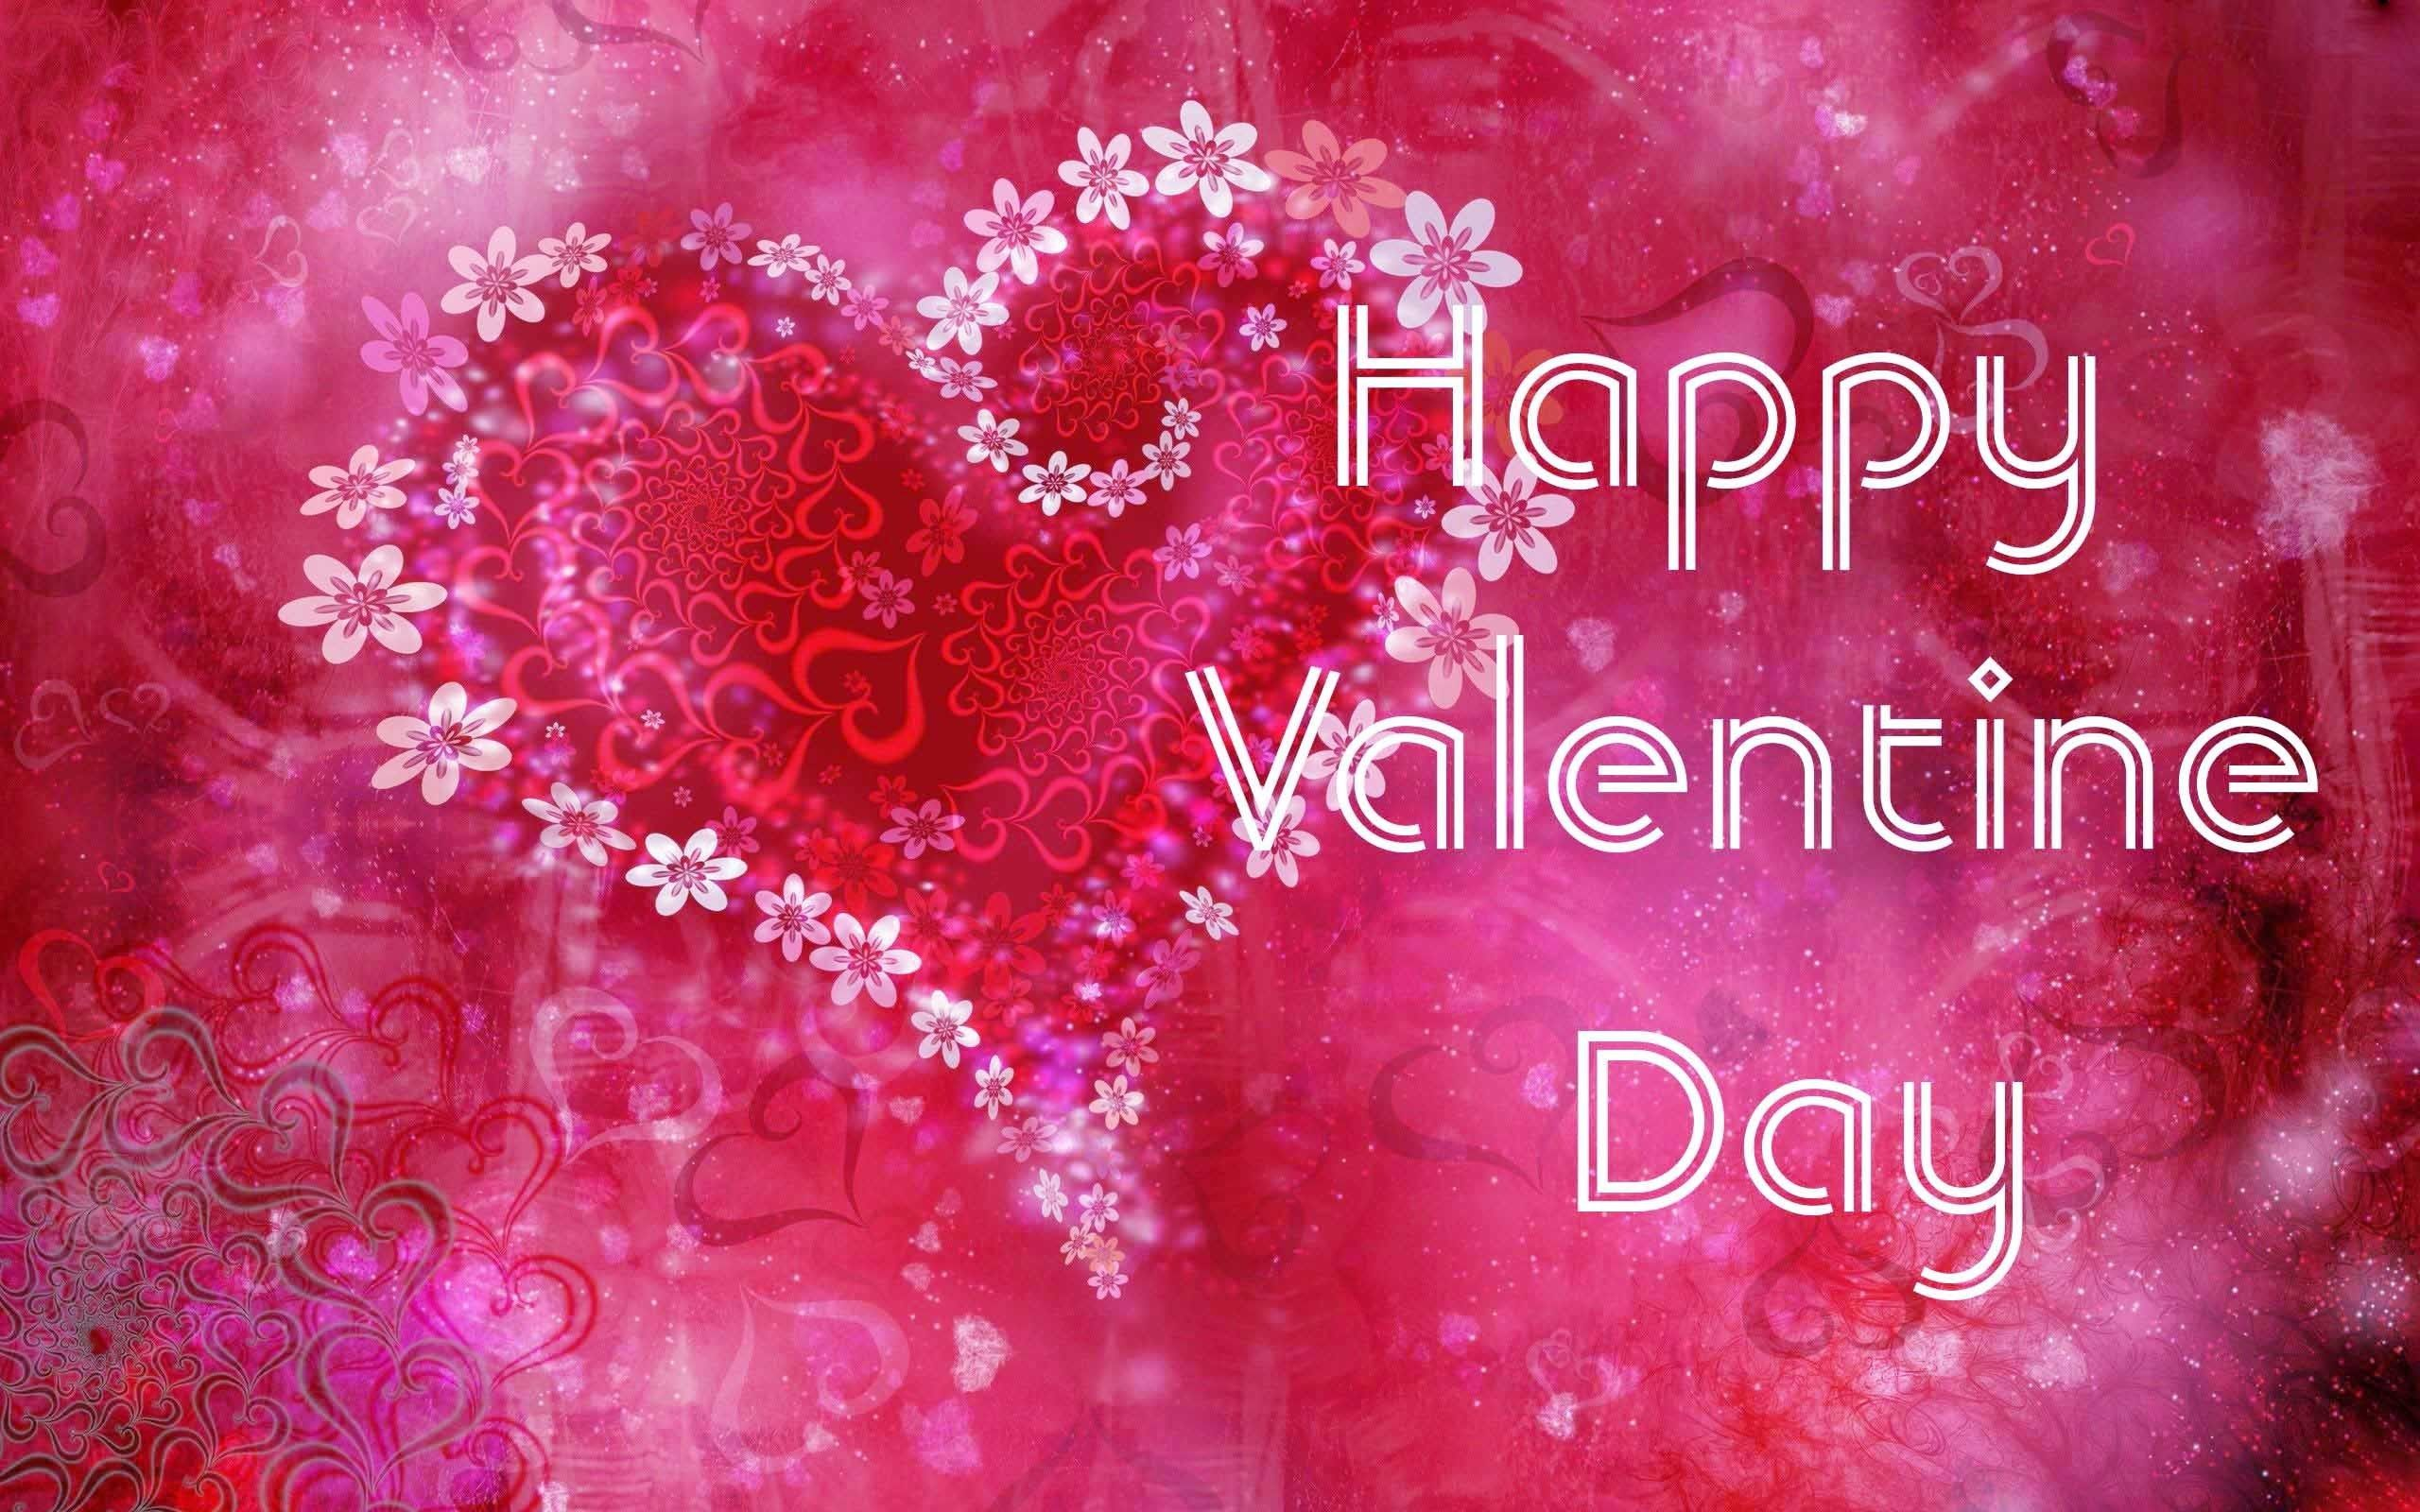 2560x1600 Cute Valentines Day Desktop Wallpaper – Quotes & Wishes